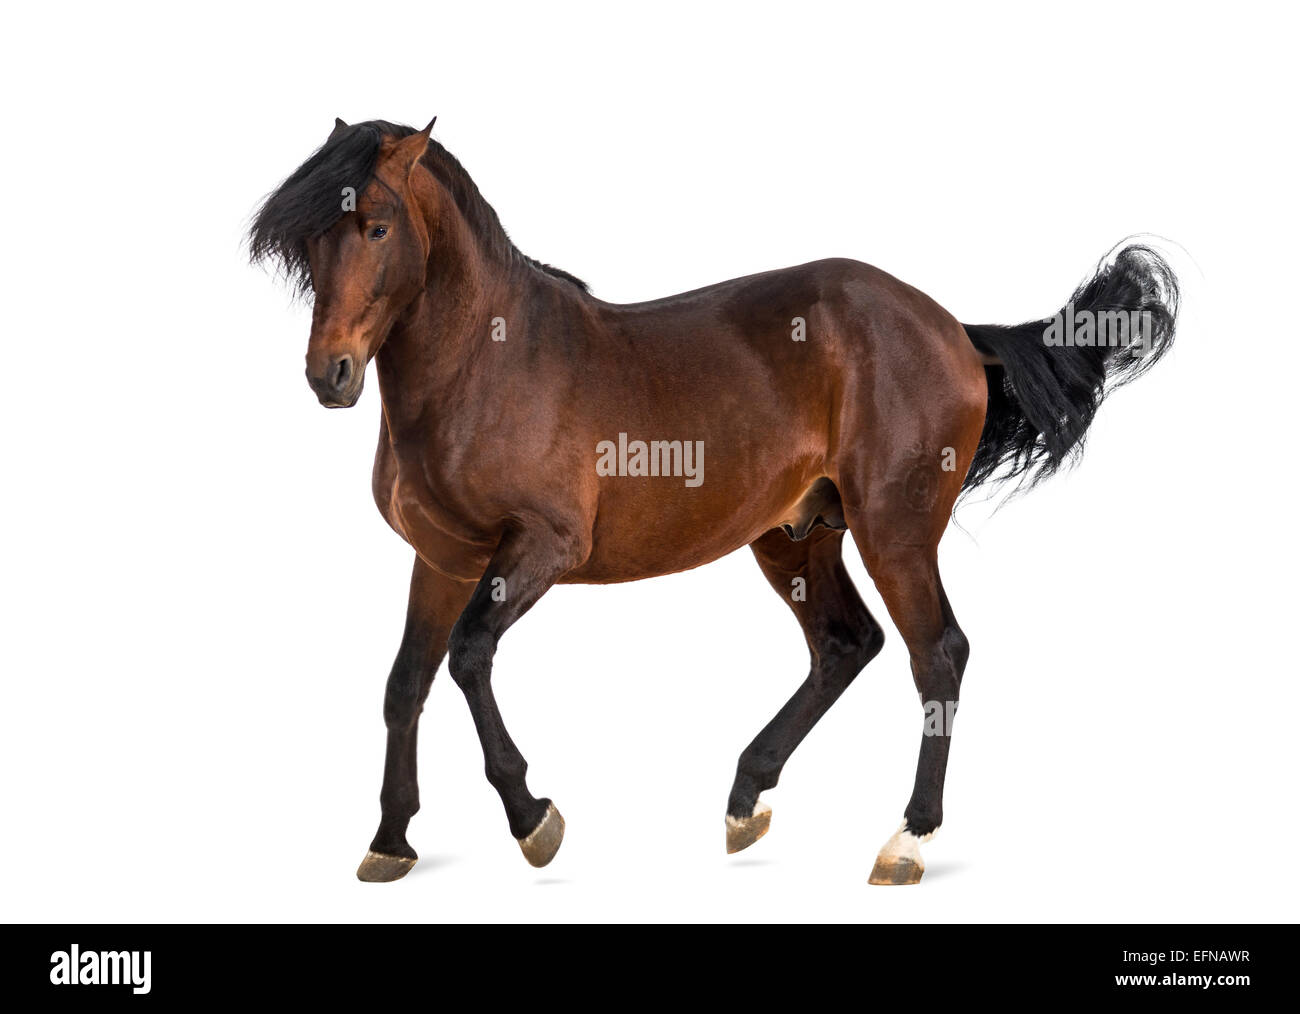 Andalusian horse trotting against white background - Stock Image